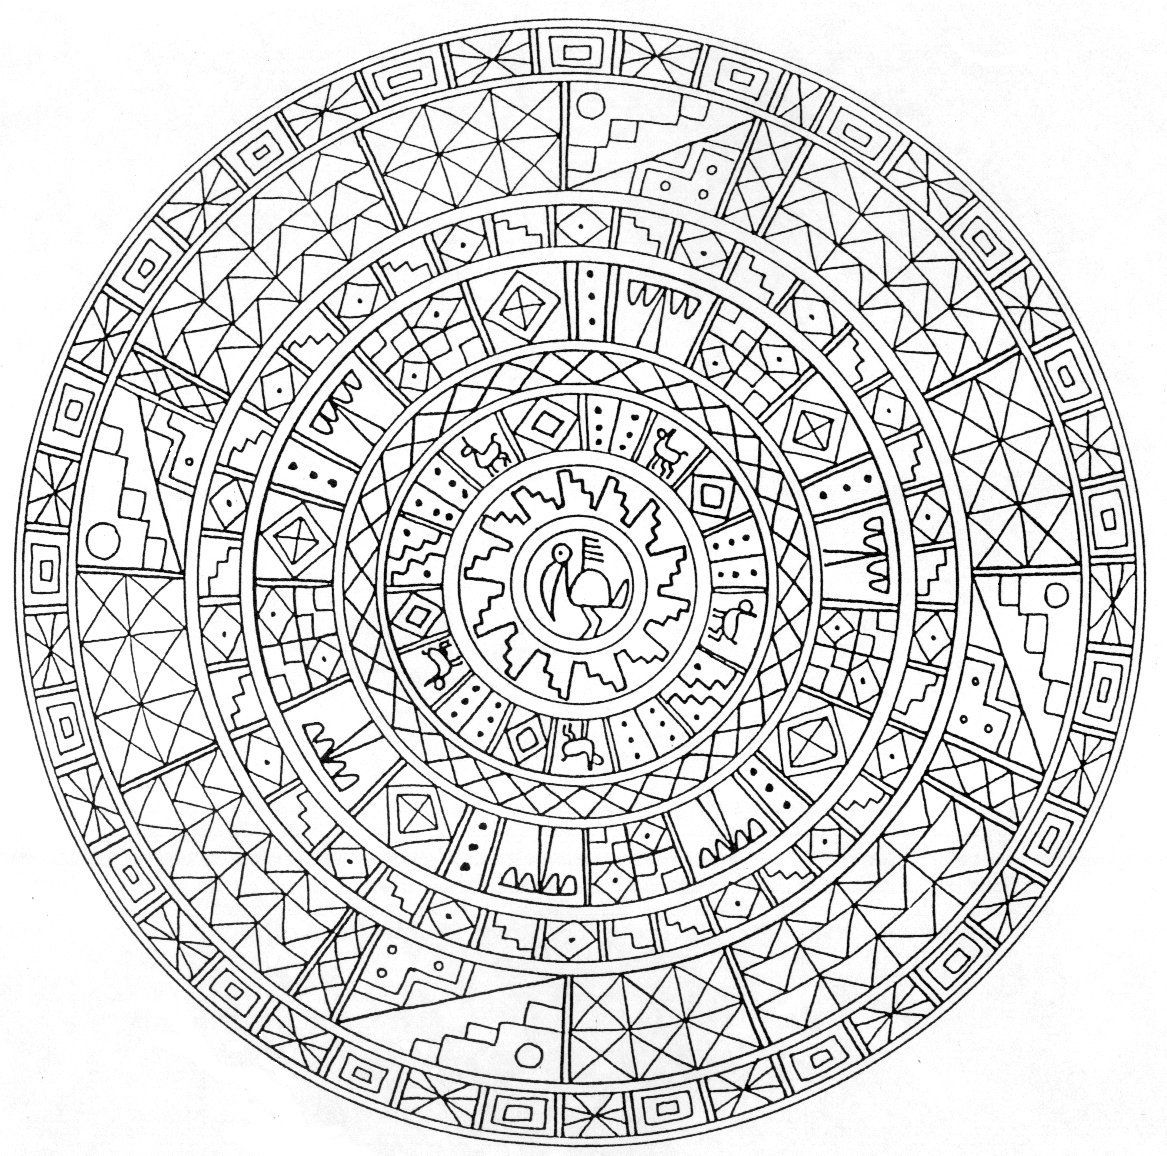 Sun mandala coloring pages - 29 Printable Mandala Abstract Colouring Pages For Meditation Stress